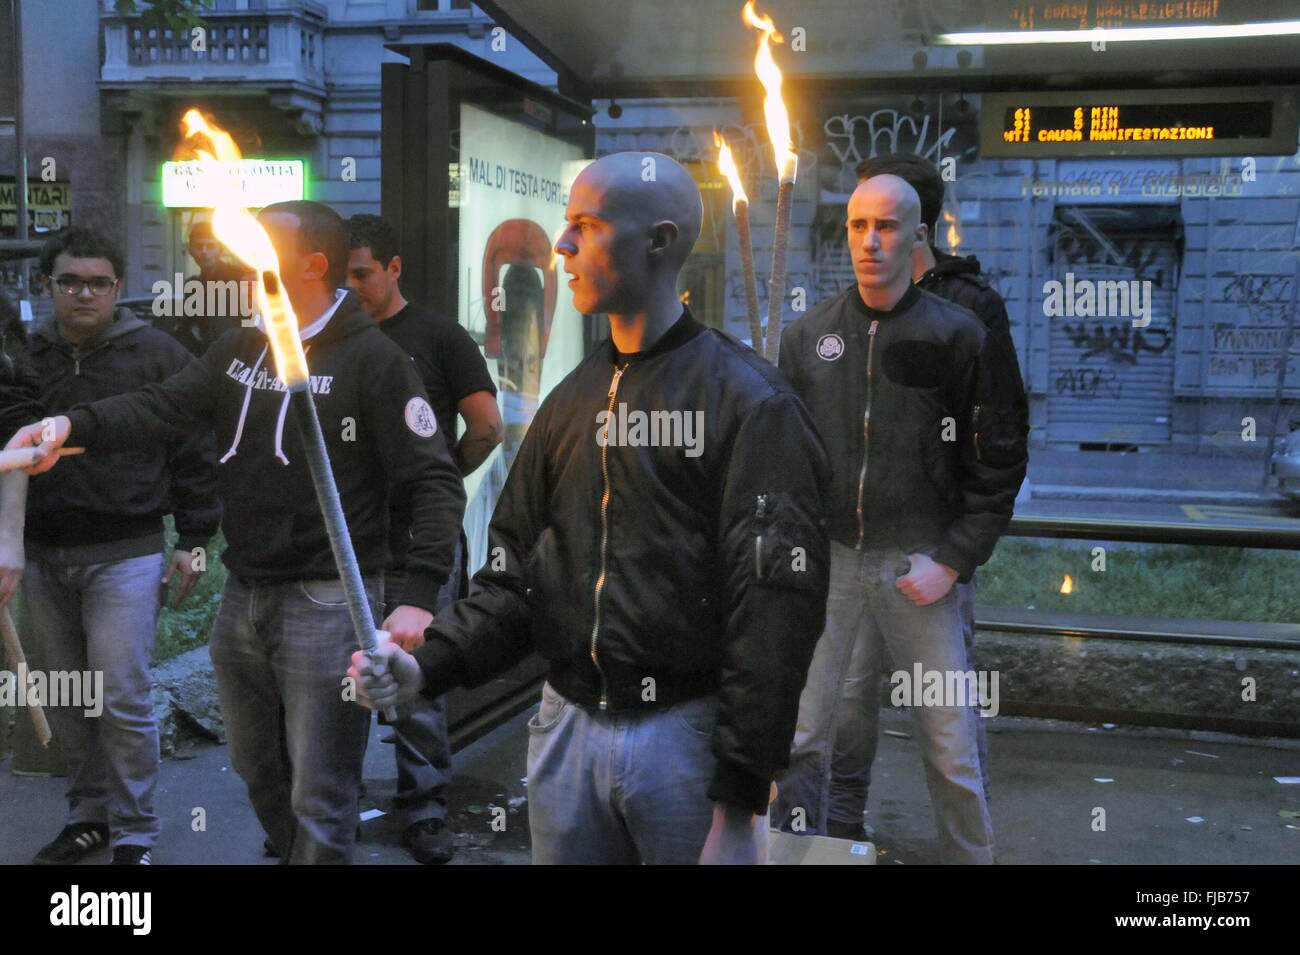 Milan demonstration of far-right groups in the anniversary of two killed in 1975 Stock Photo